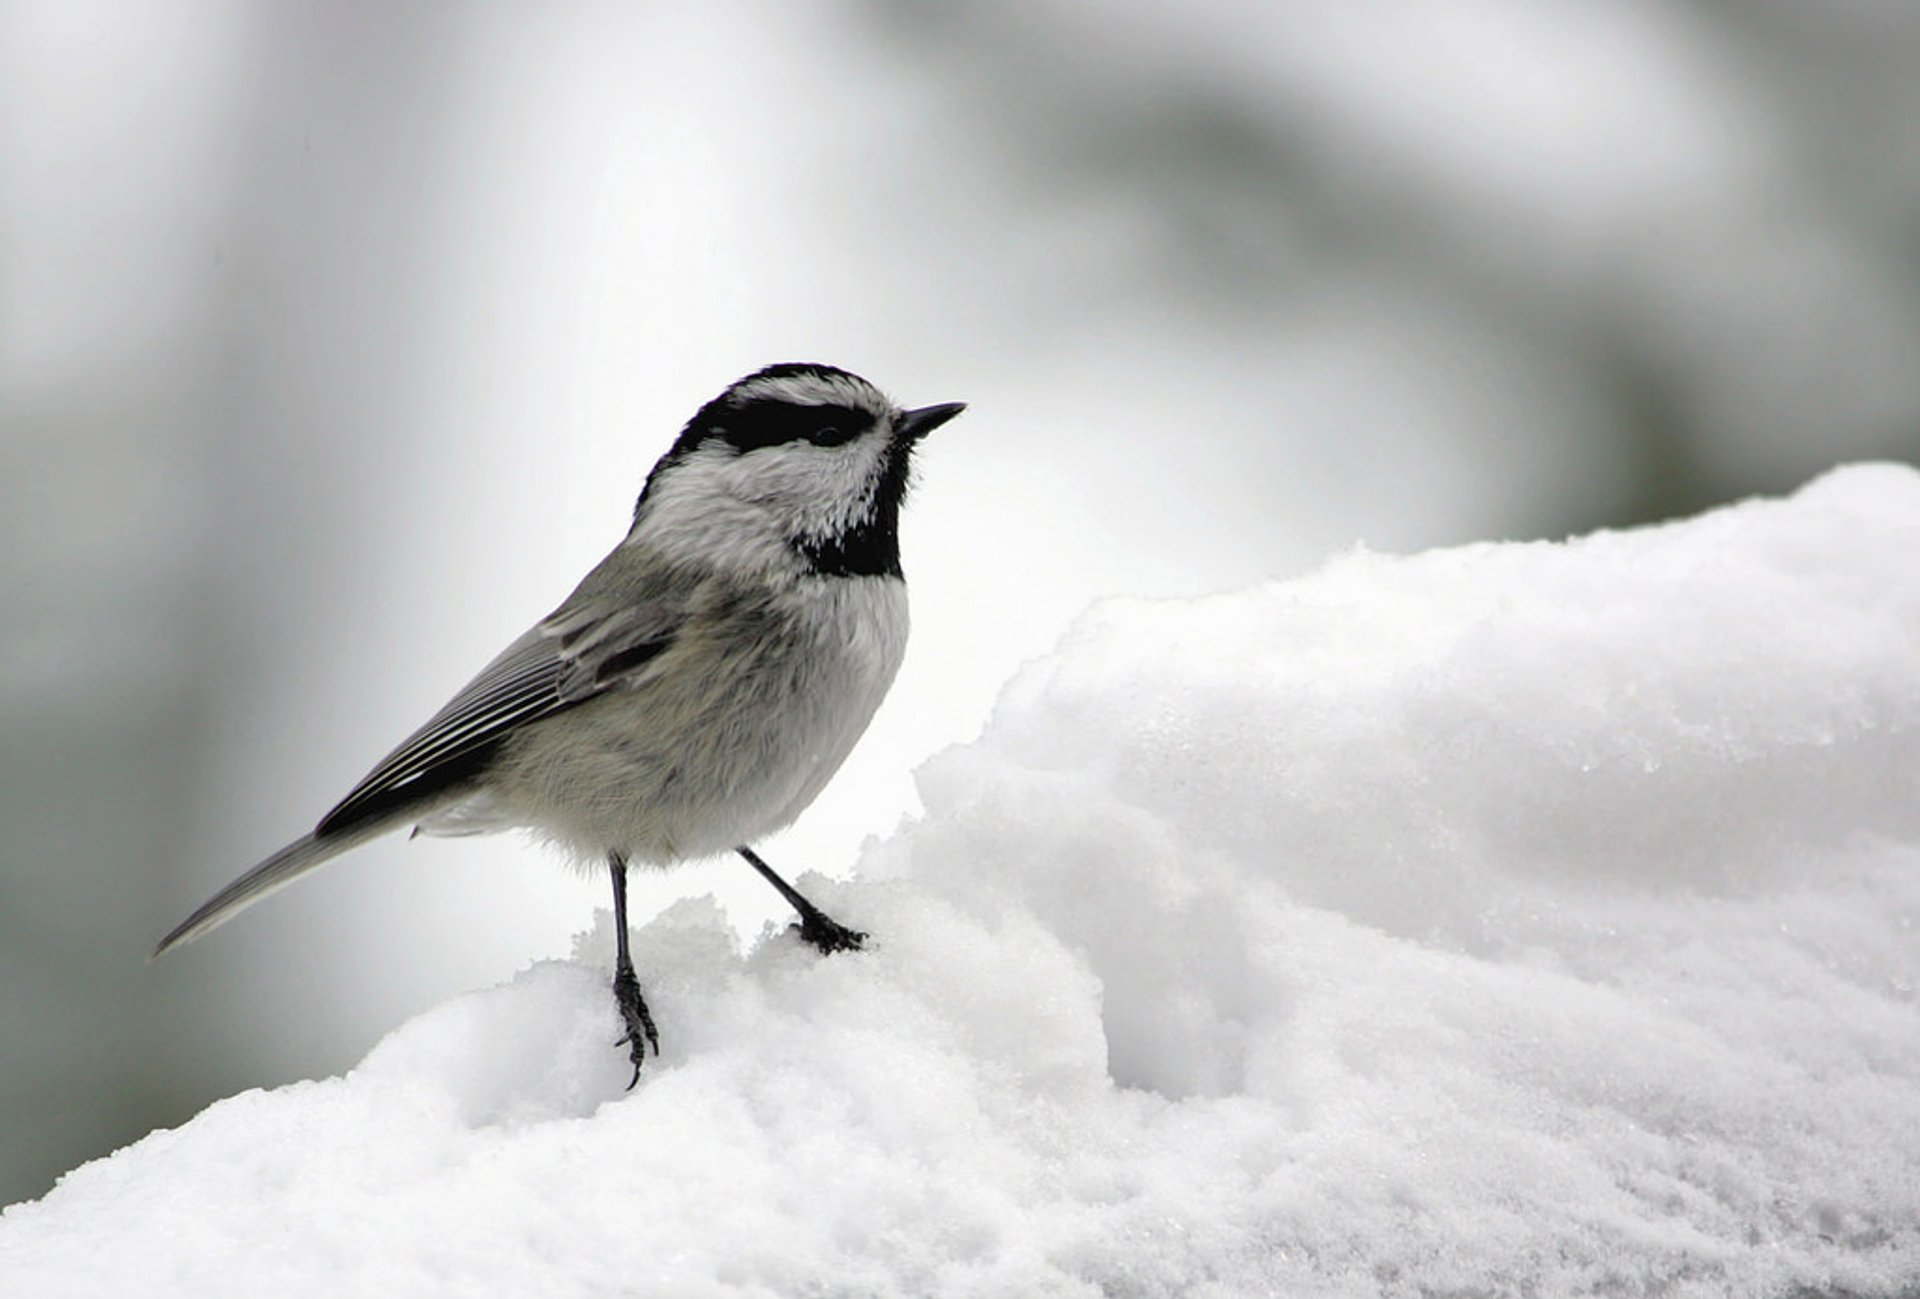 Mountain chickadee 2019